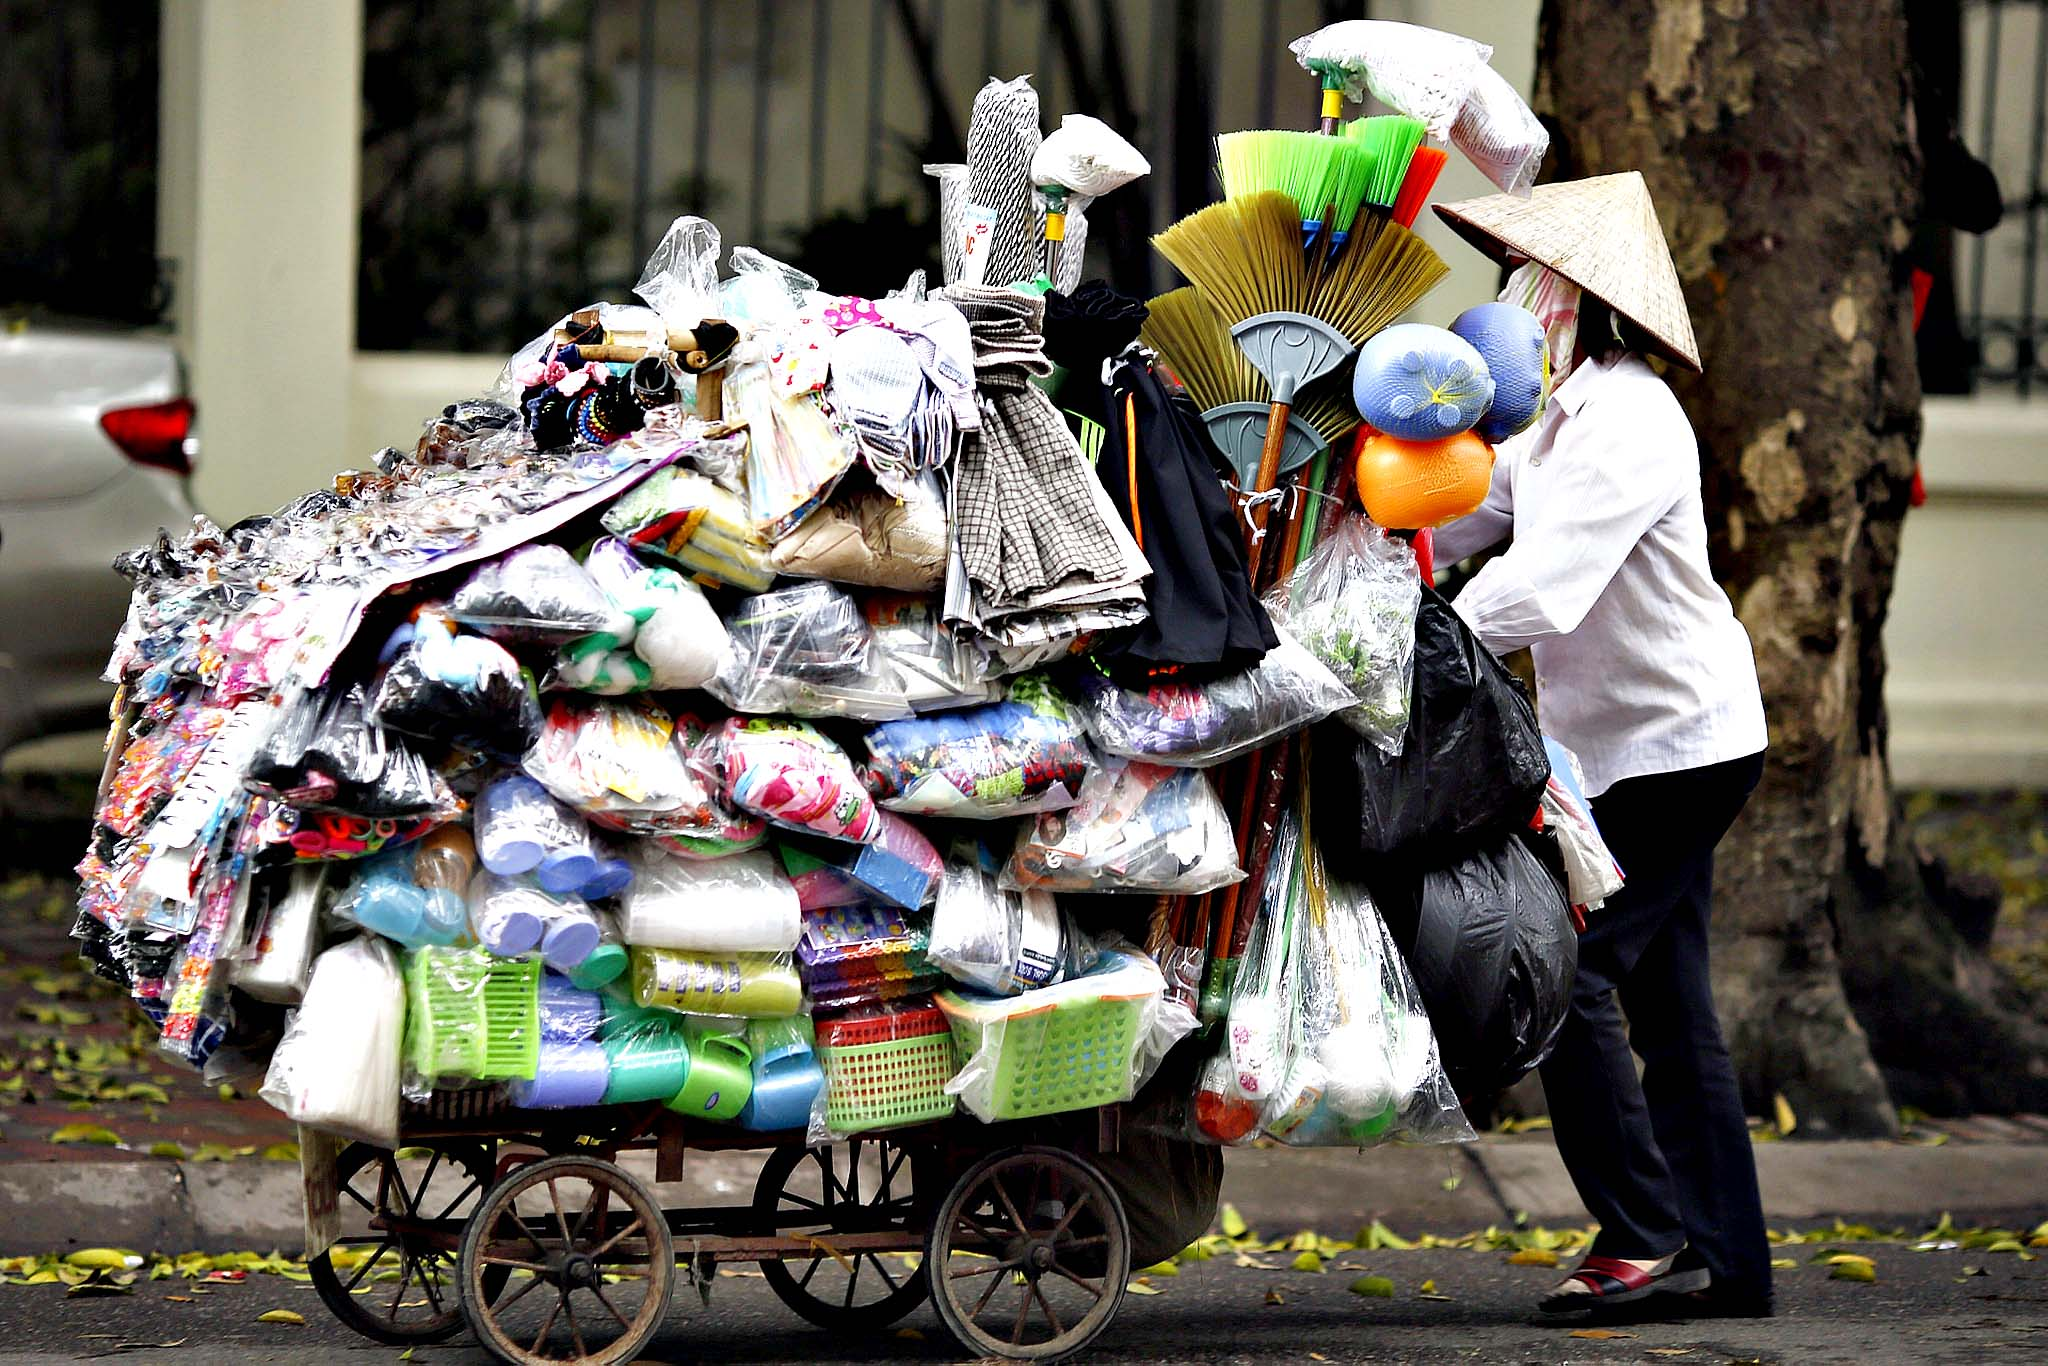 A street vender walks at a street in Hanoi, Vietnam, 10 April 2014. According to a report released by the World Bank recently, Vietnam's economic growth is predicted to rise of 5.5 percent in 2014.